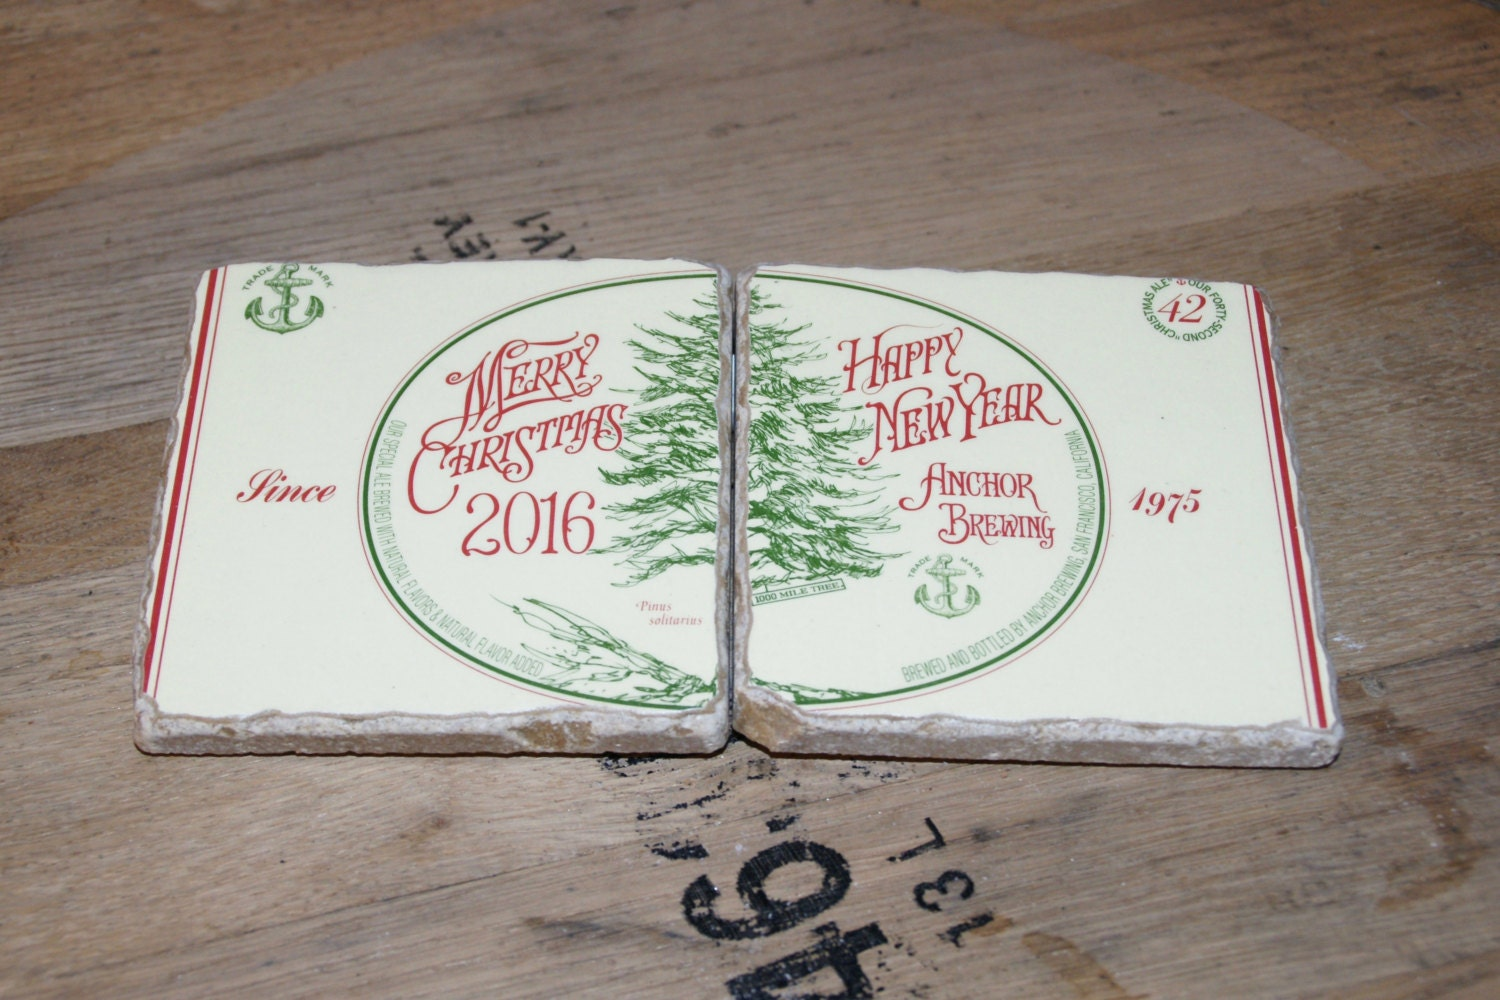 Upcycled Coaster Set Of 2 Anchor Brewing Merry Christmas Happy New Year 2016